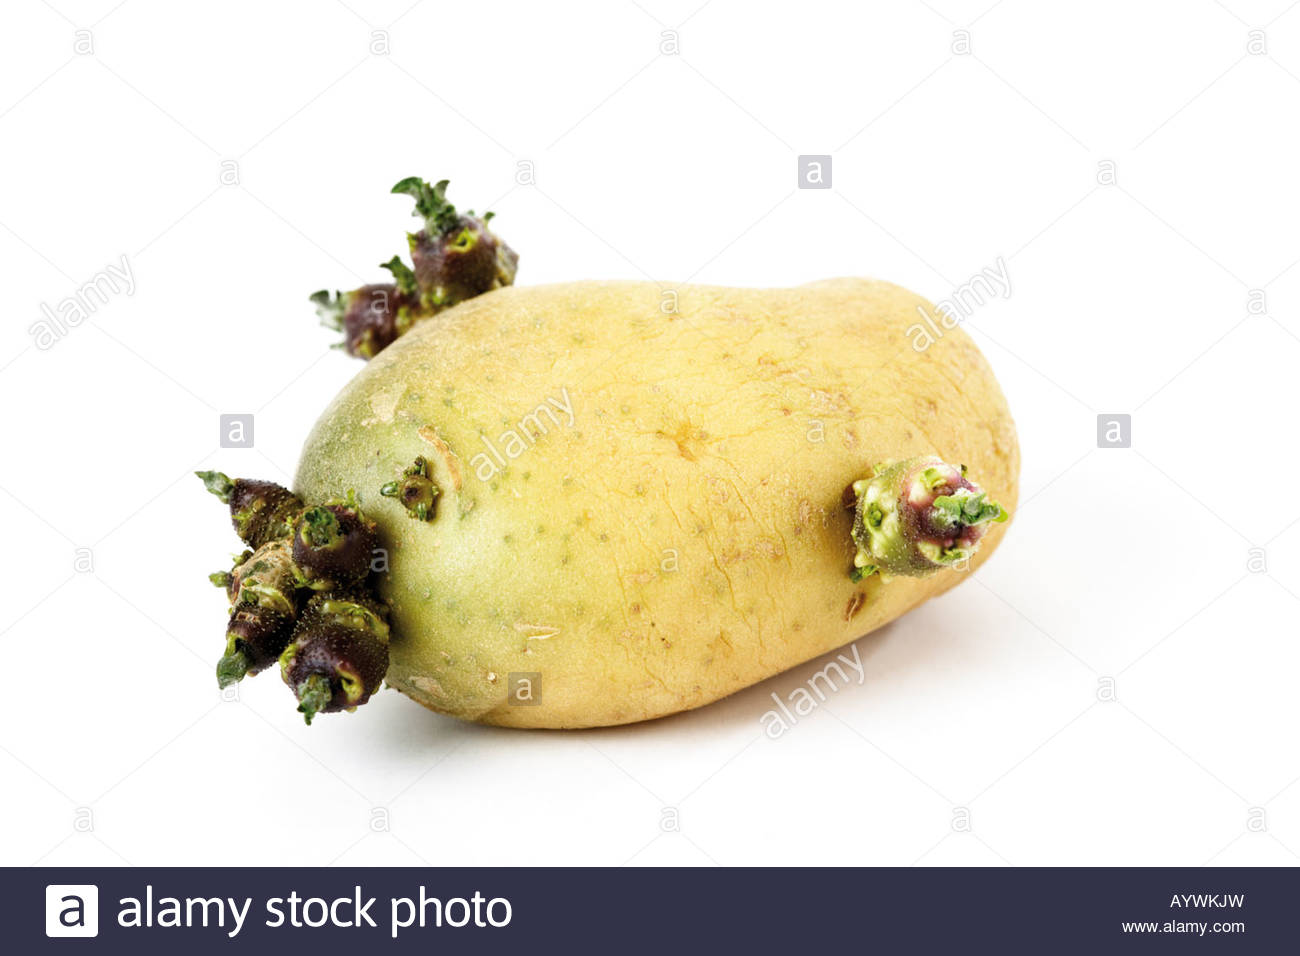 how to get seed potatoes to sprout